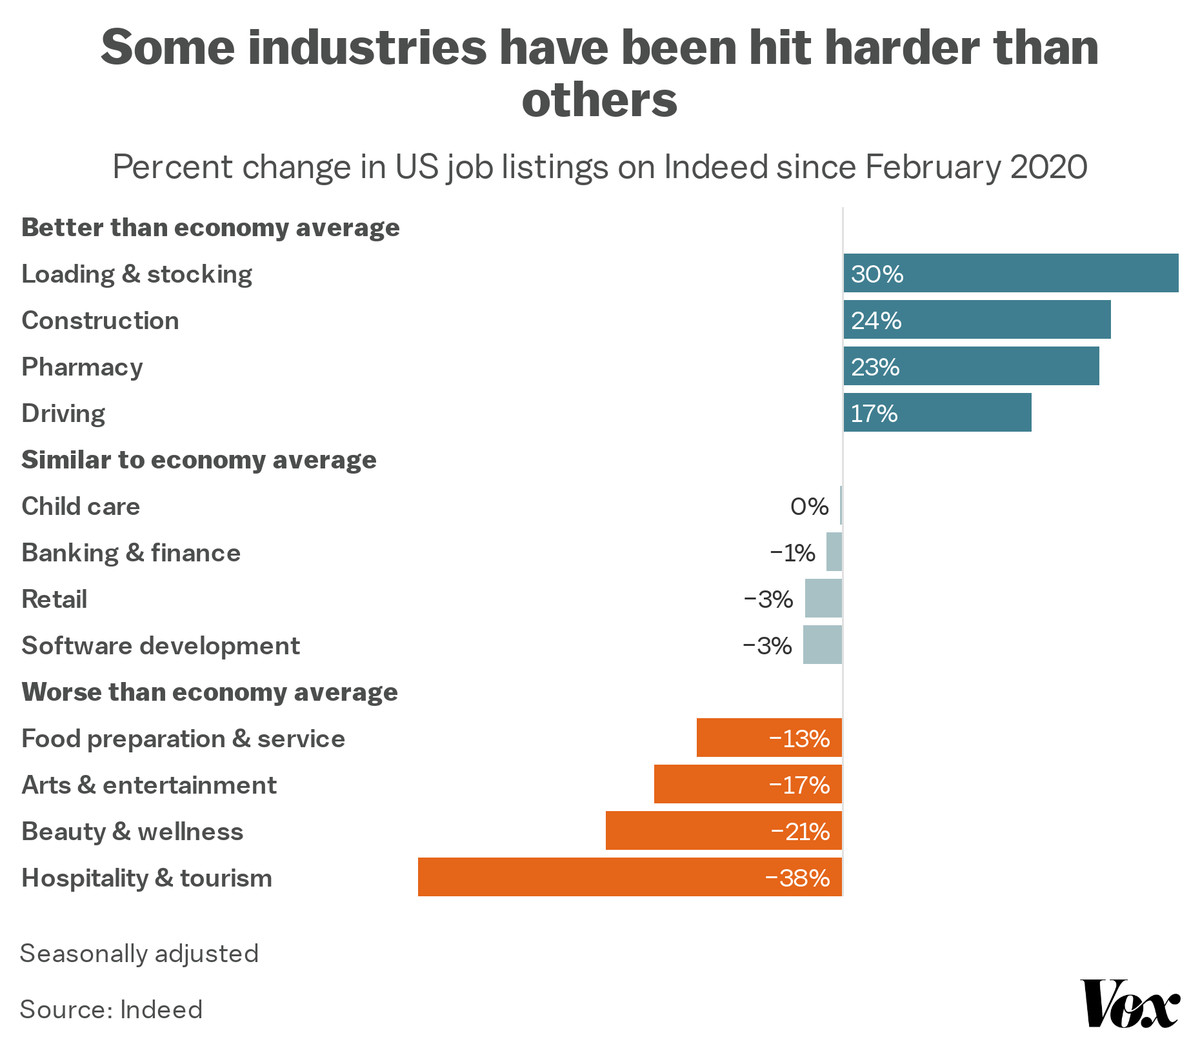 Some industries have been hit harder than others